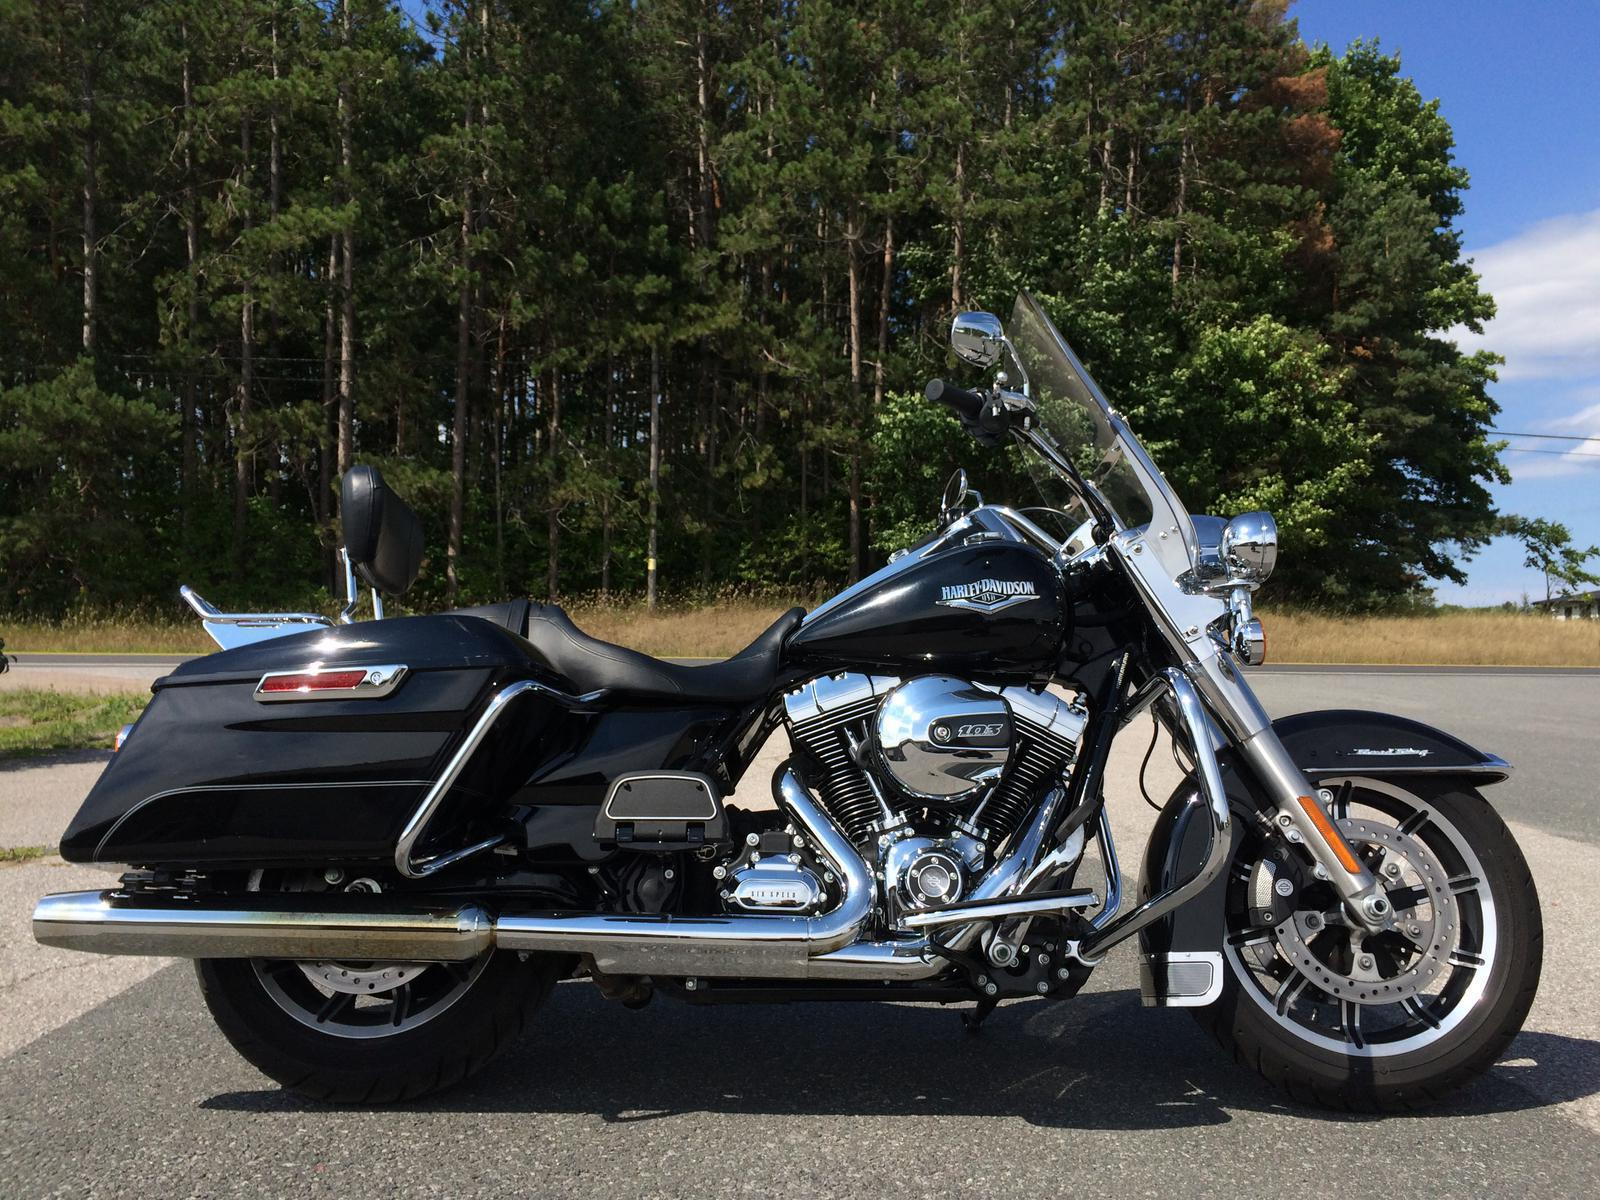 2015 Harley Davidson FLHR Road King for sale in Lakefield ON